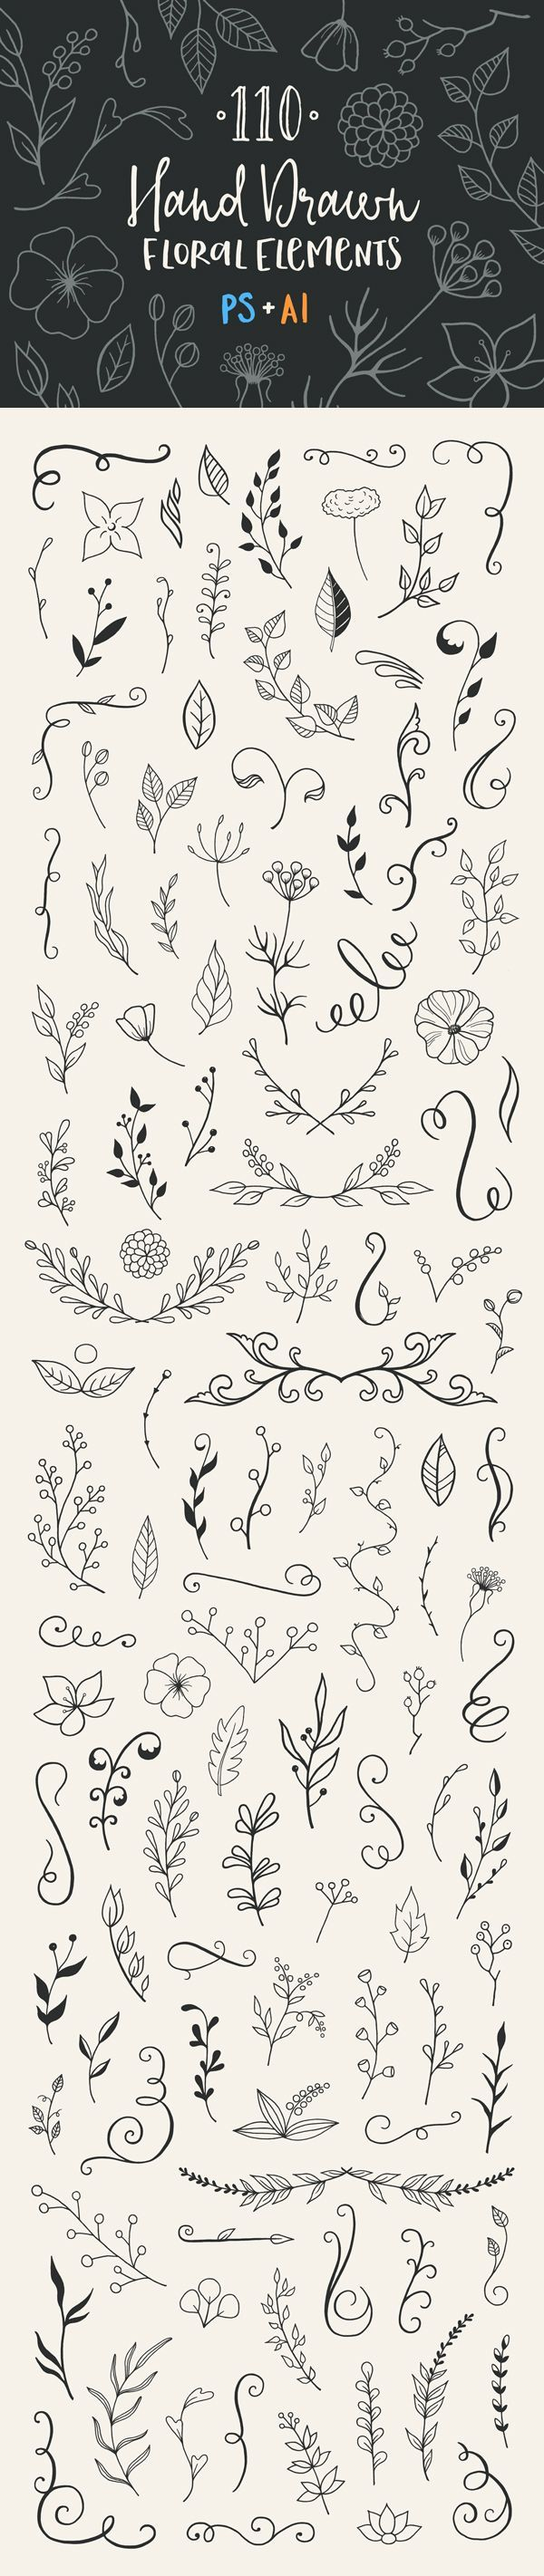 Freebie Round-Up! - Free Pretty Things For You #embroidery